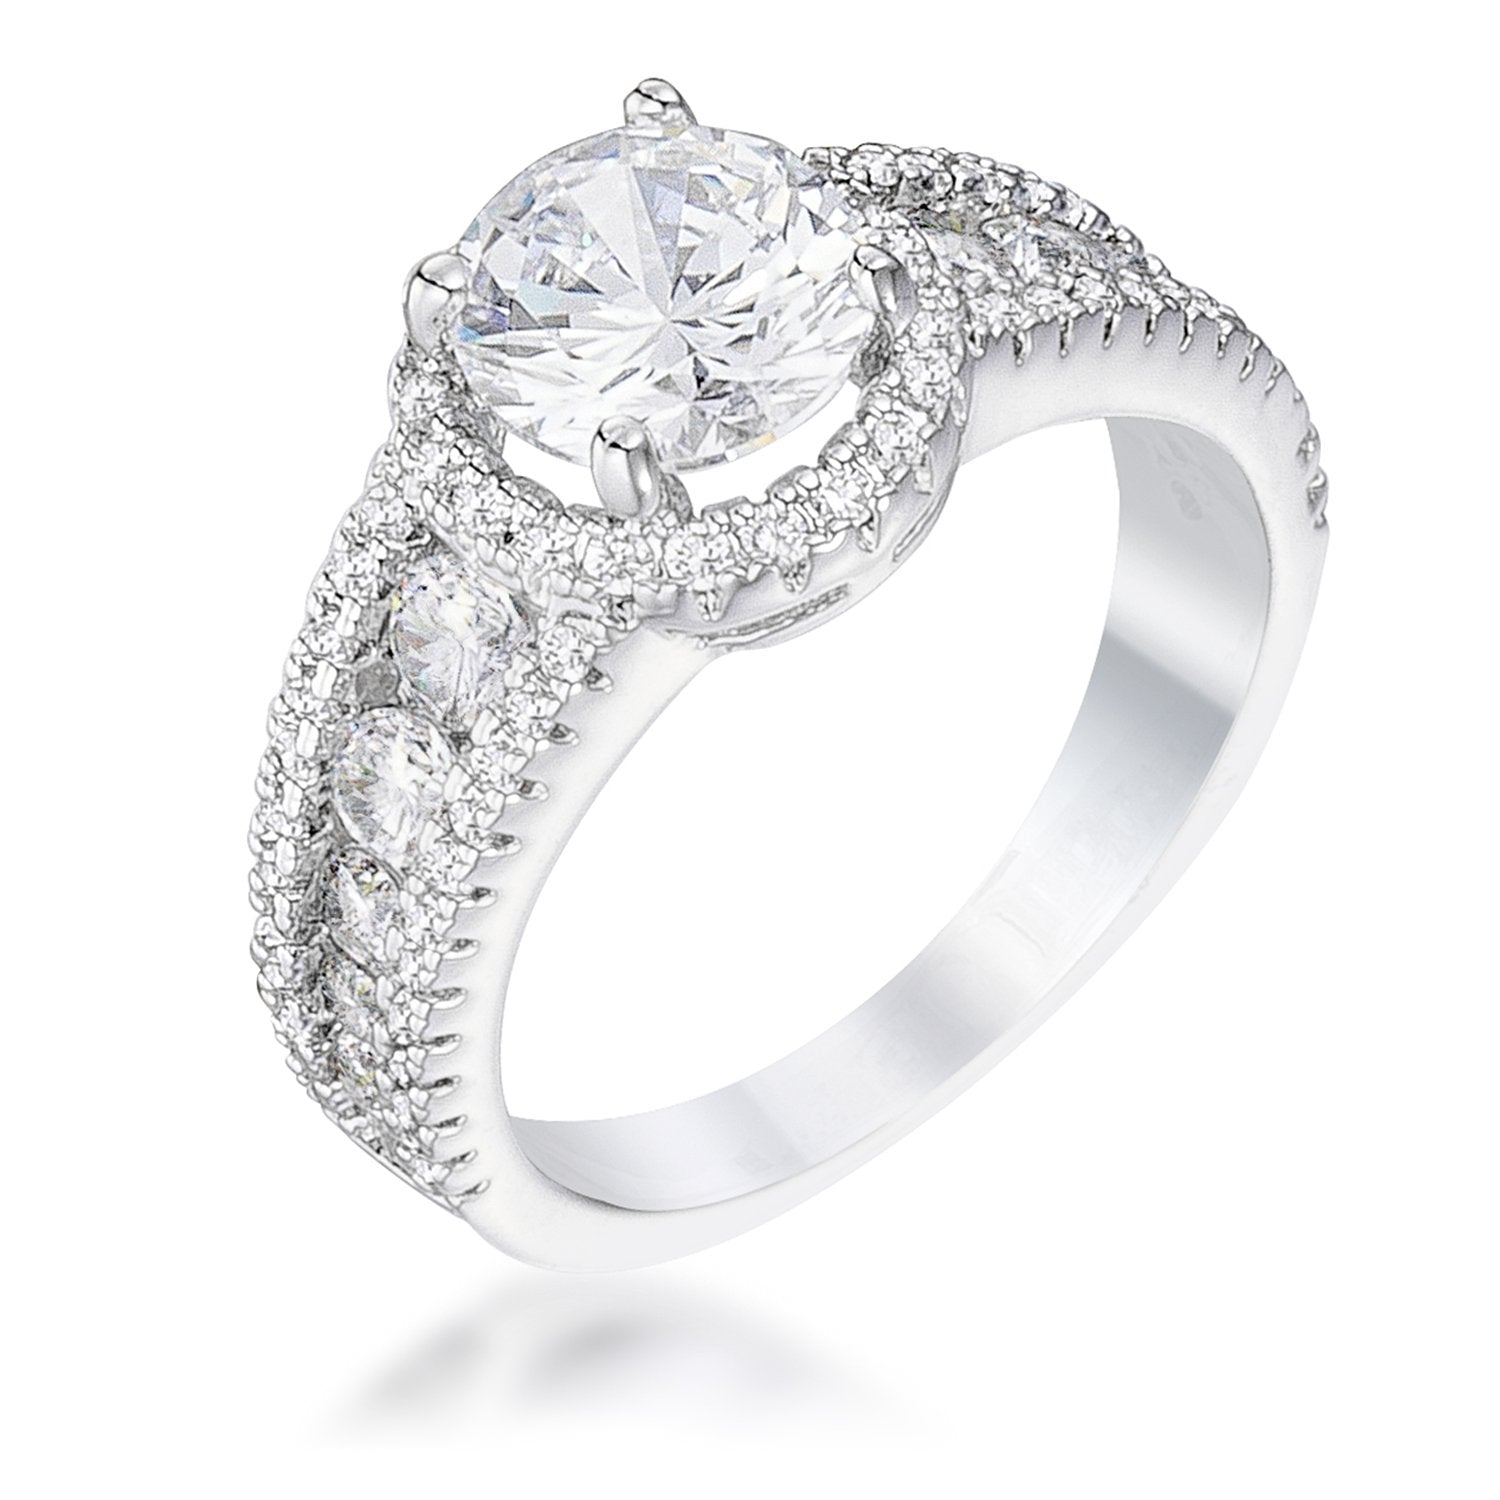 2.1Ct Rhodium Plated Solitaire Engagement Halo Ring - Opulent Lifestyle